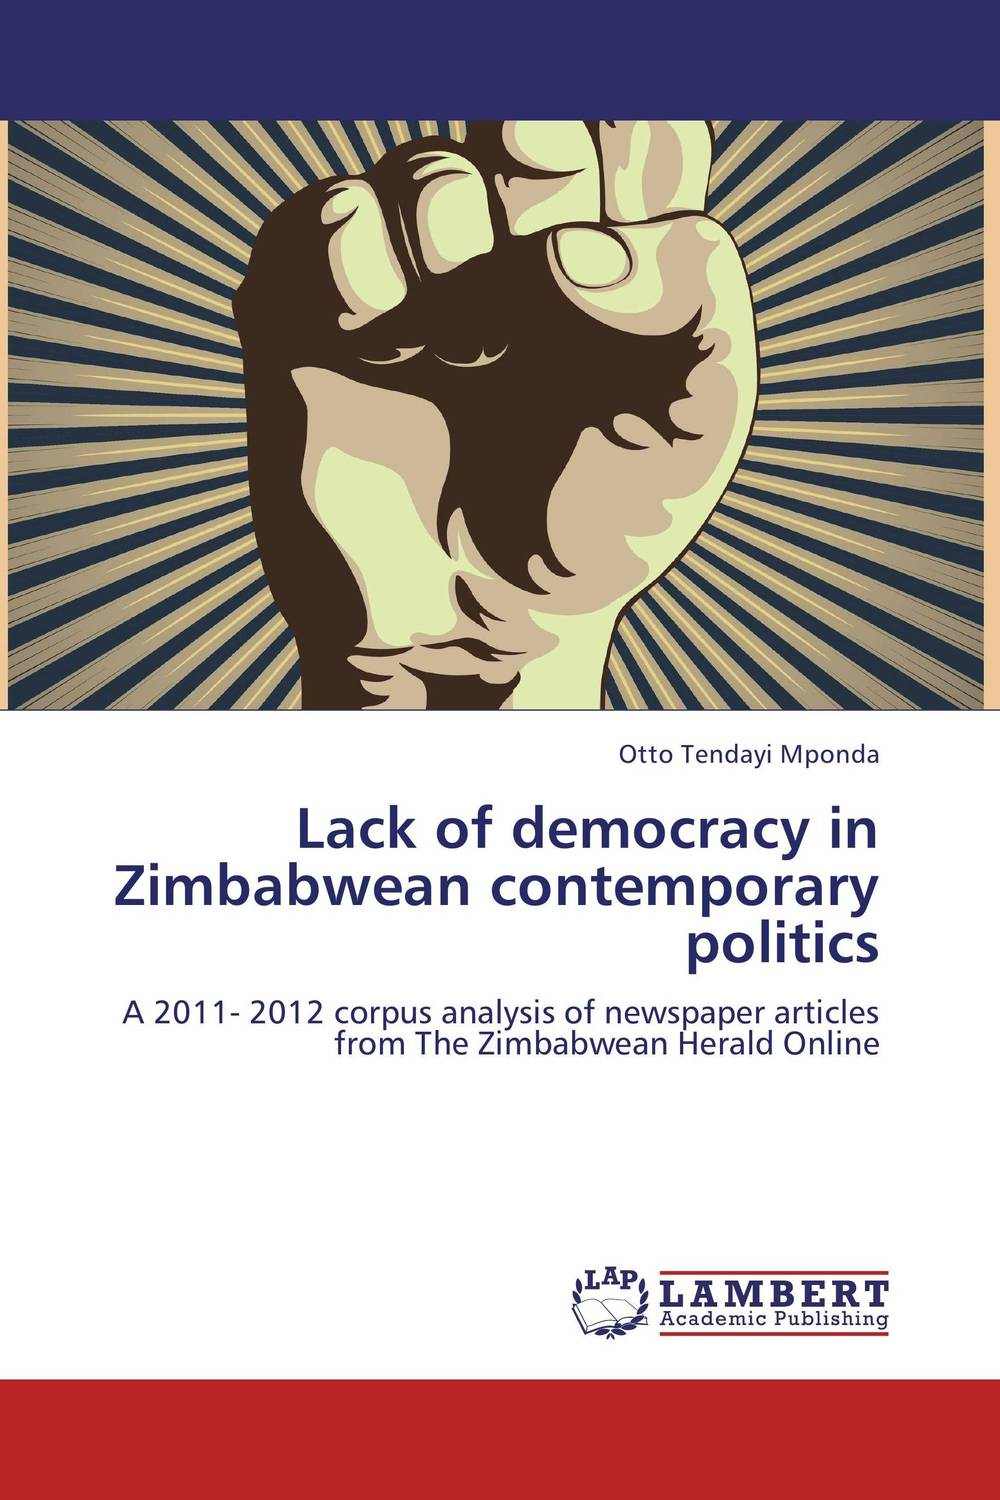 Lack of democracy in Zimbabwean contemporary politics strict democracy burning the bridges in politics